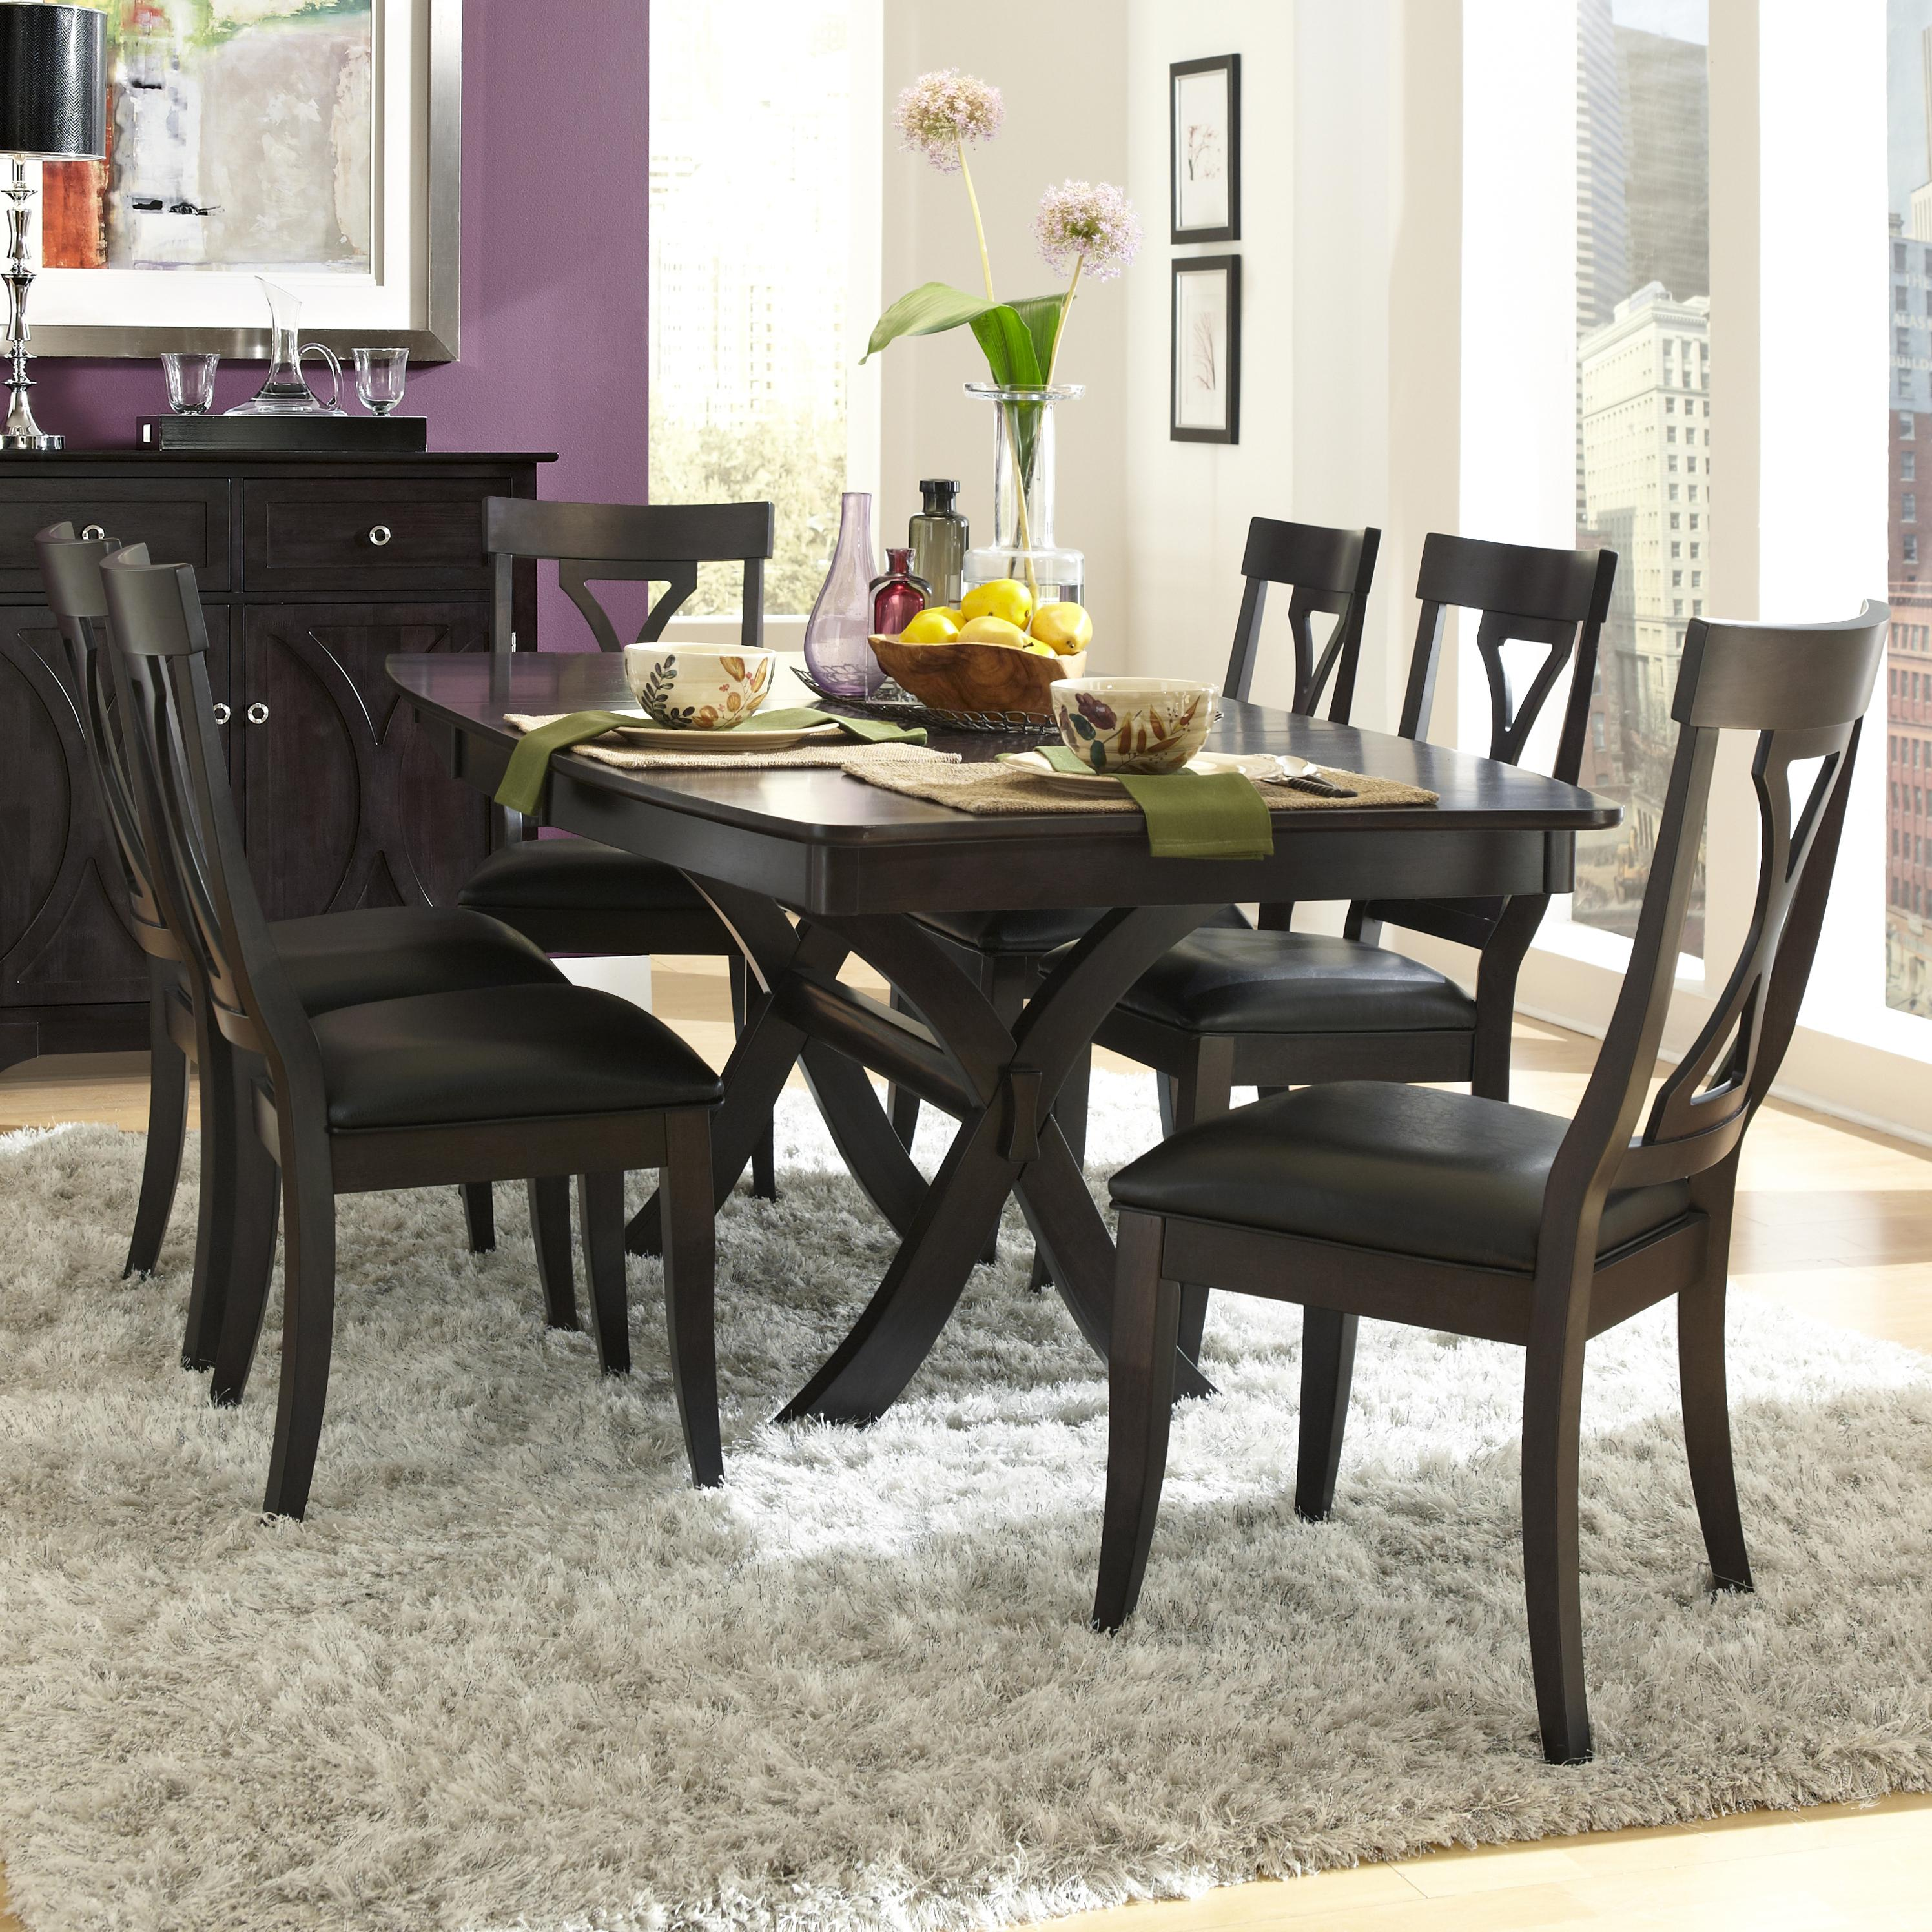 AAmerica Midtown 7 Piece Table and Chairs Set - Item Number: MID-WG-6-30-0+6x2-47-K